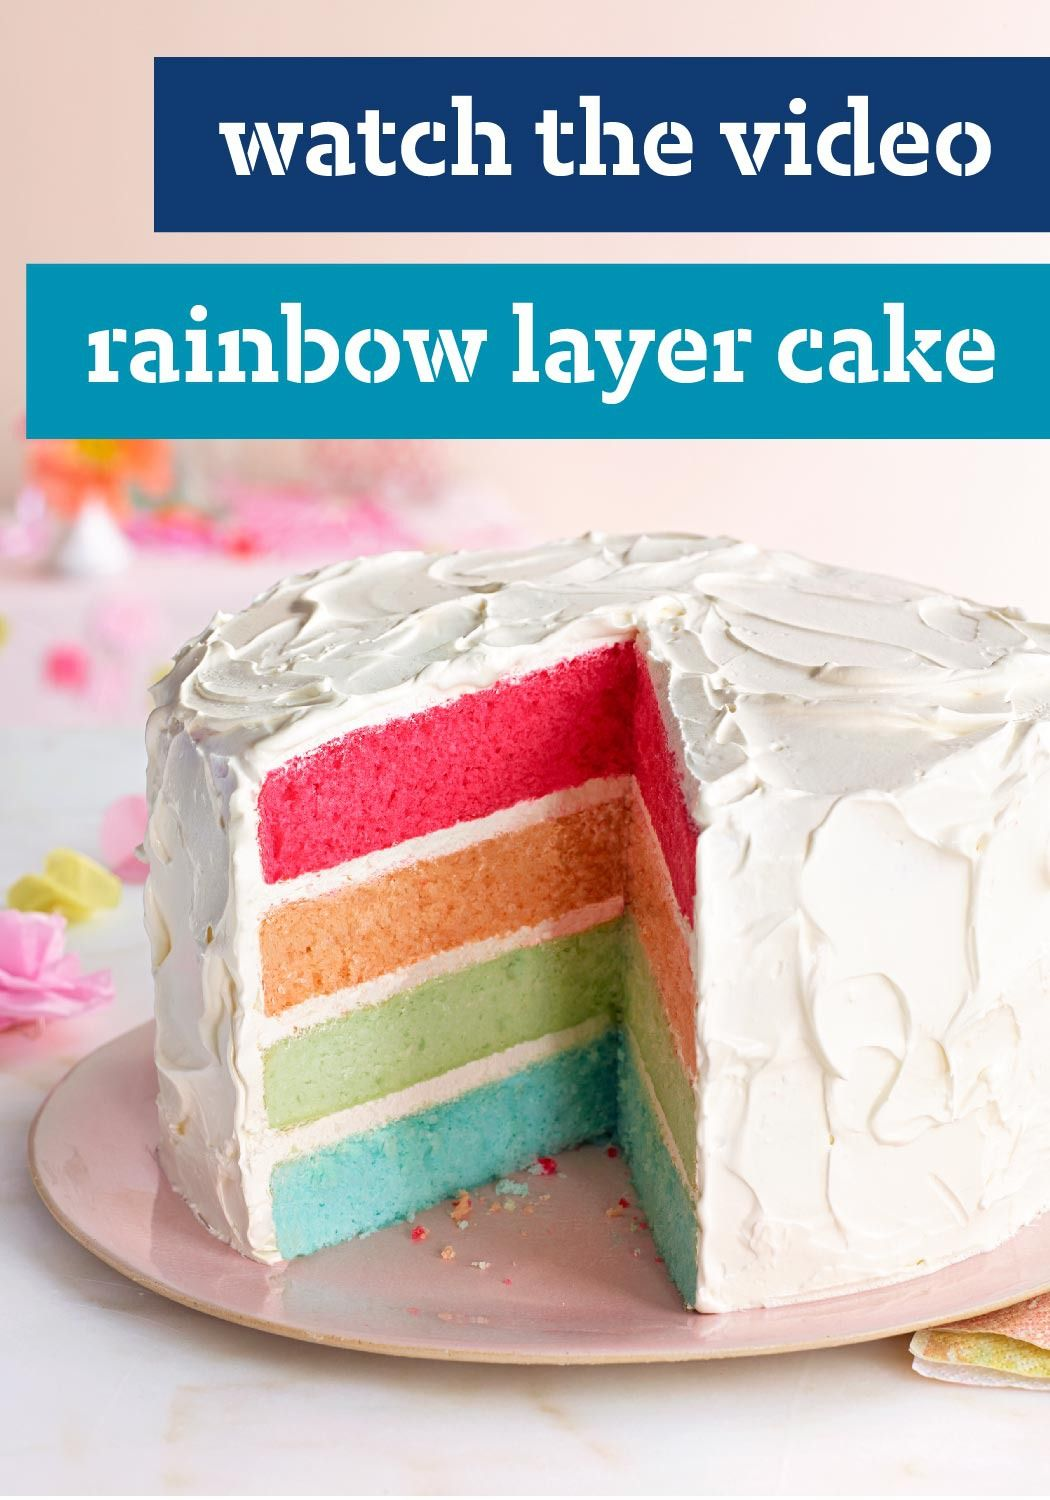 Rainbow Layer Cake – A mix of fruity JELL-O flavors gives this impressive layer cake its rainbow of colors. And making one is a whole lot easier than you might think! Watch our video tutorial!